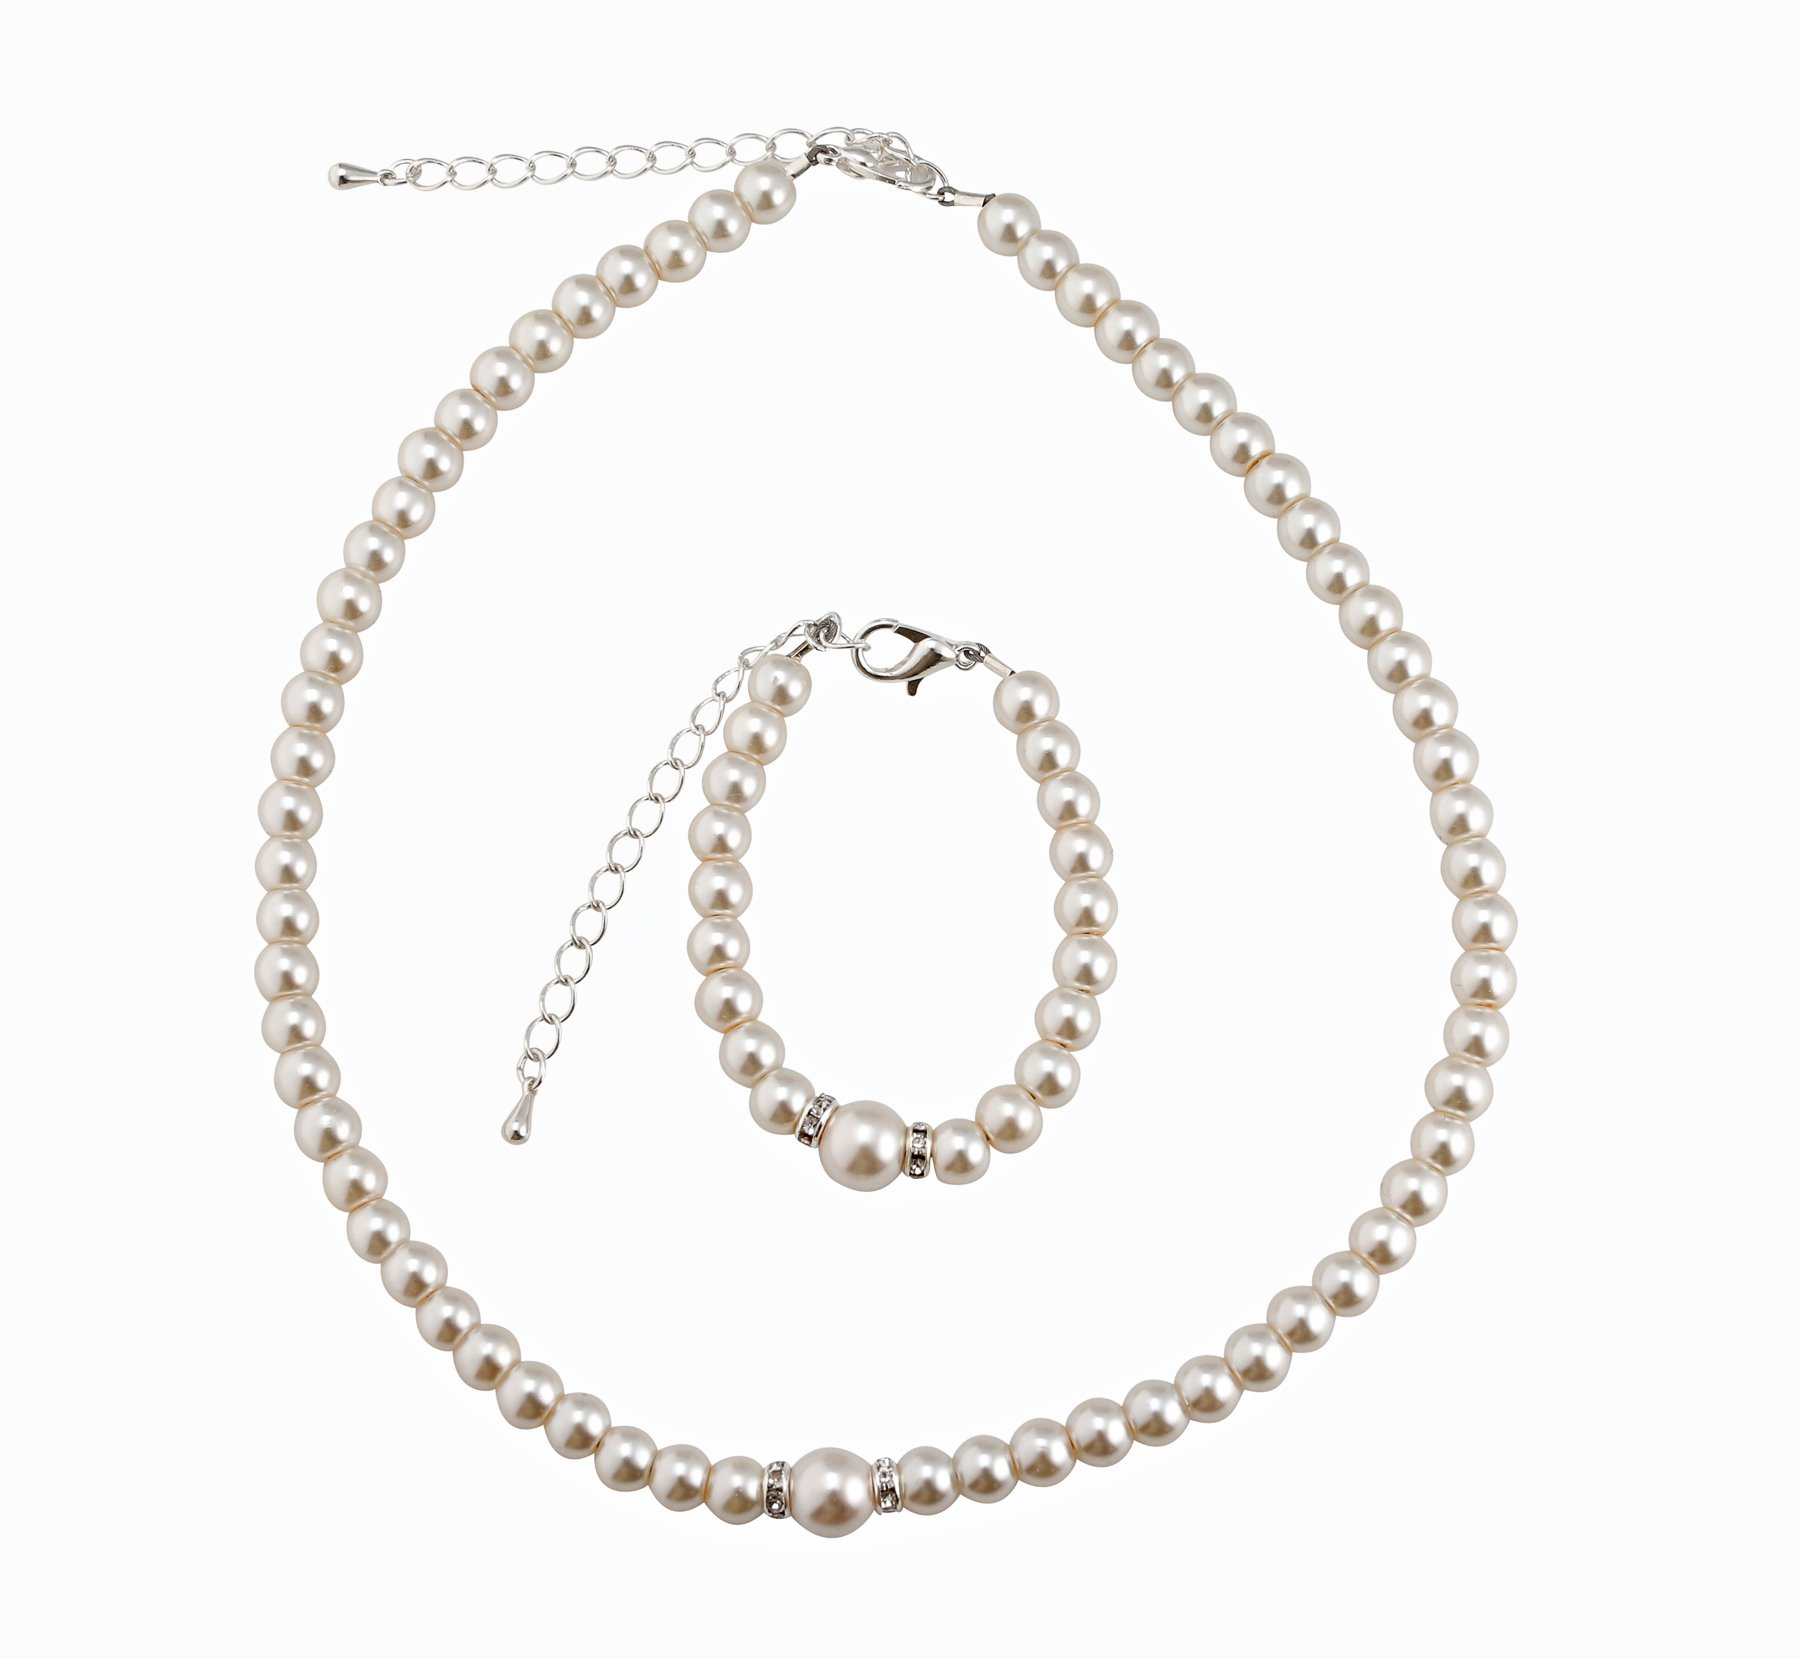 Crystal Dream Elegant Cream Simulated Pearl Baby Girl Necklace and Bracelet Stylish Gift Set (GS-P-C_S)